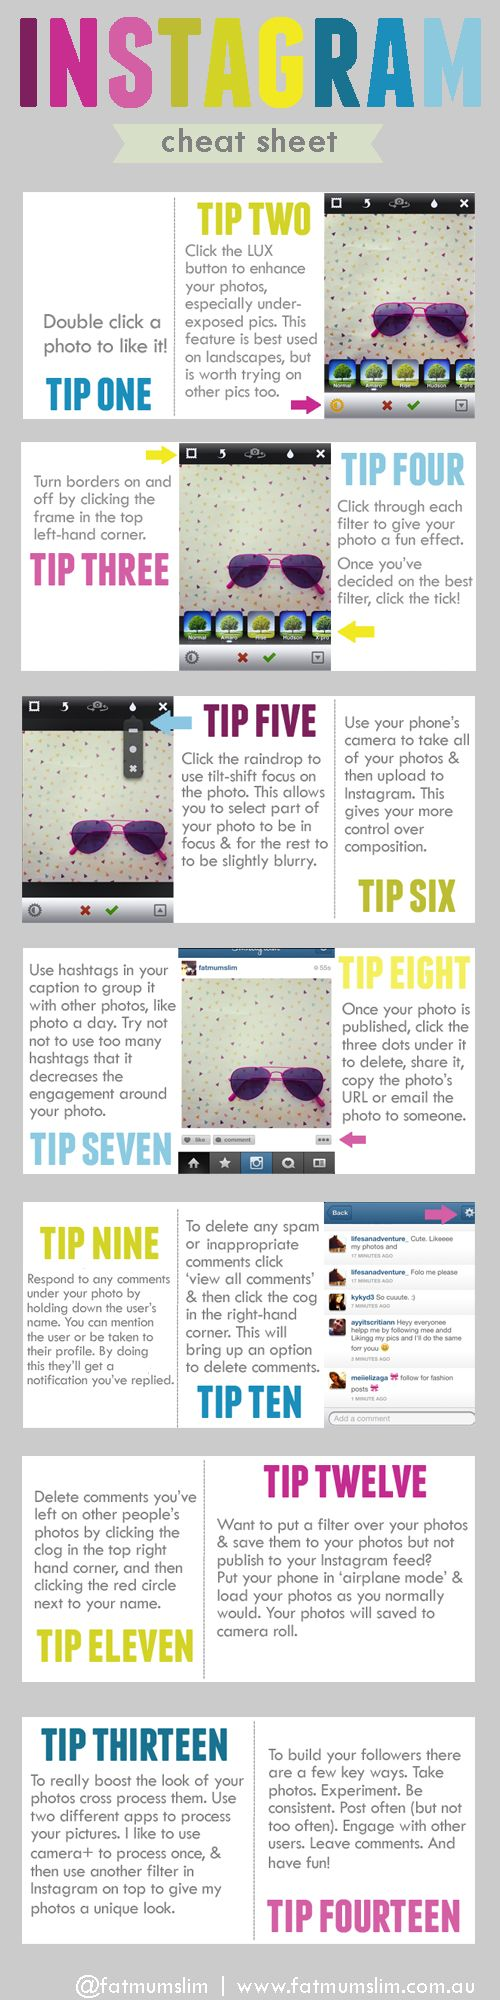 instagram tips: Website, Cheat Sheets, Social Media, Instagram Cheat, Instagram Tips, Photo Tips And Tricks, Instagram Ideas, Socialmedia, Cheatsheet